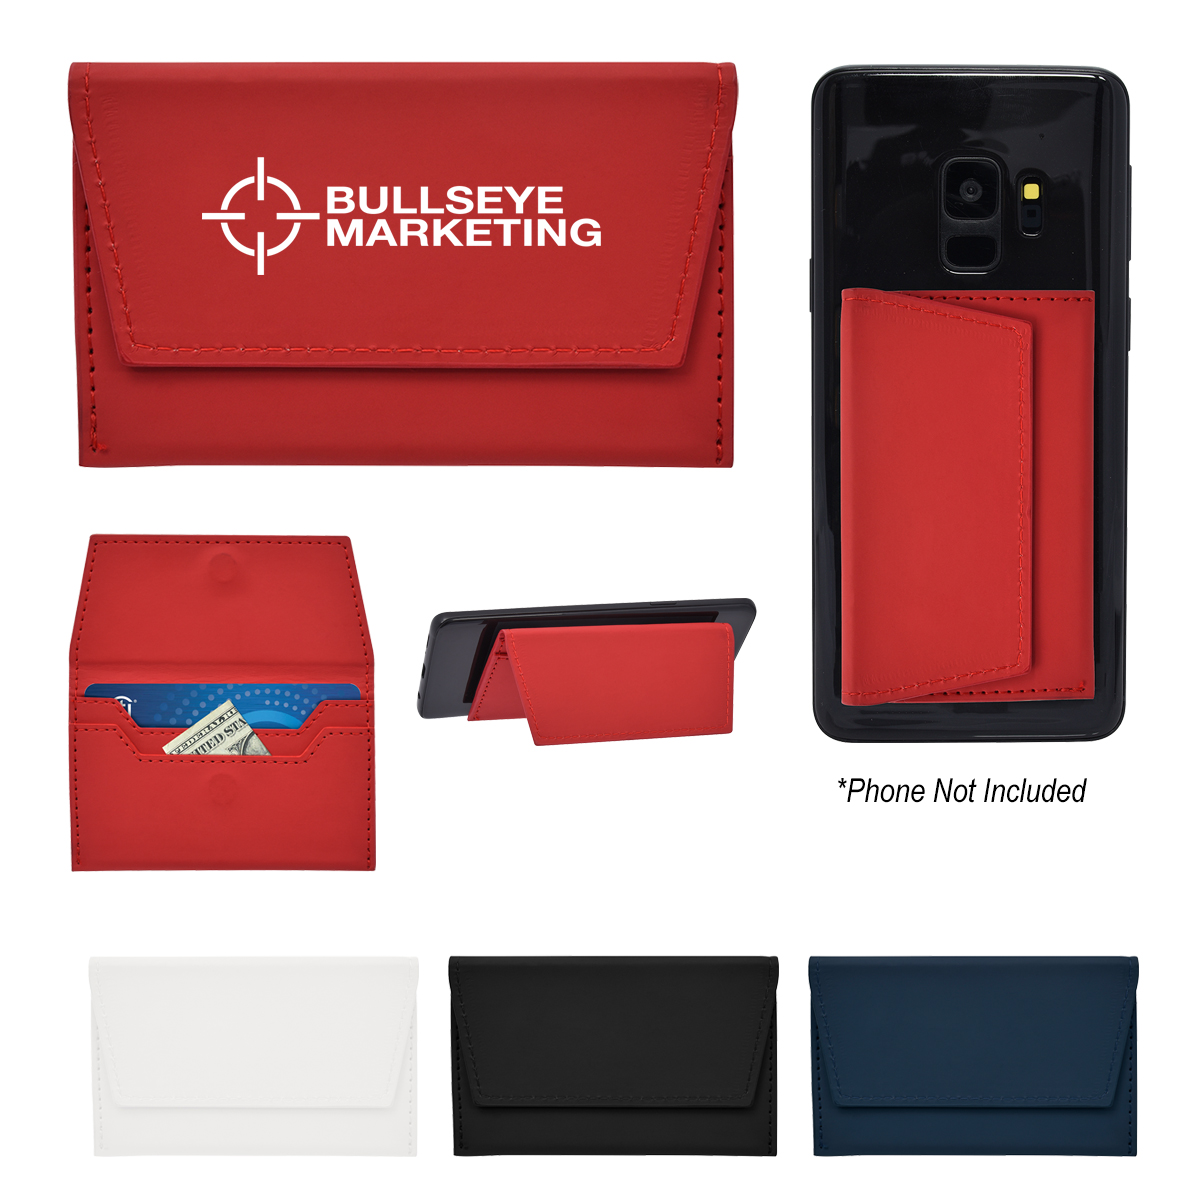 976088537-816 - Vogue Phone Wallet & Stand - thumbnail